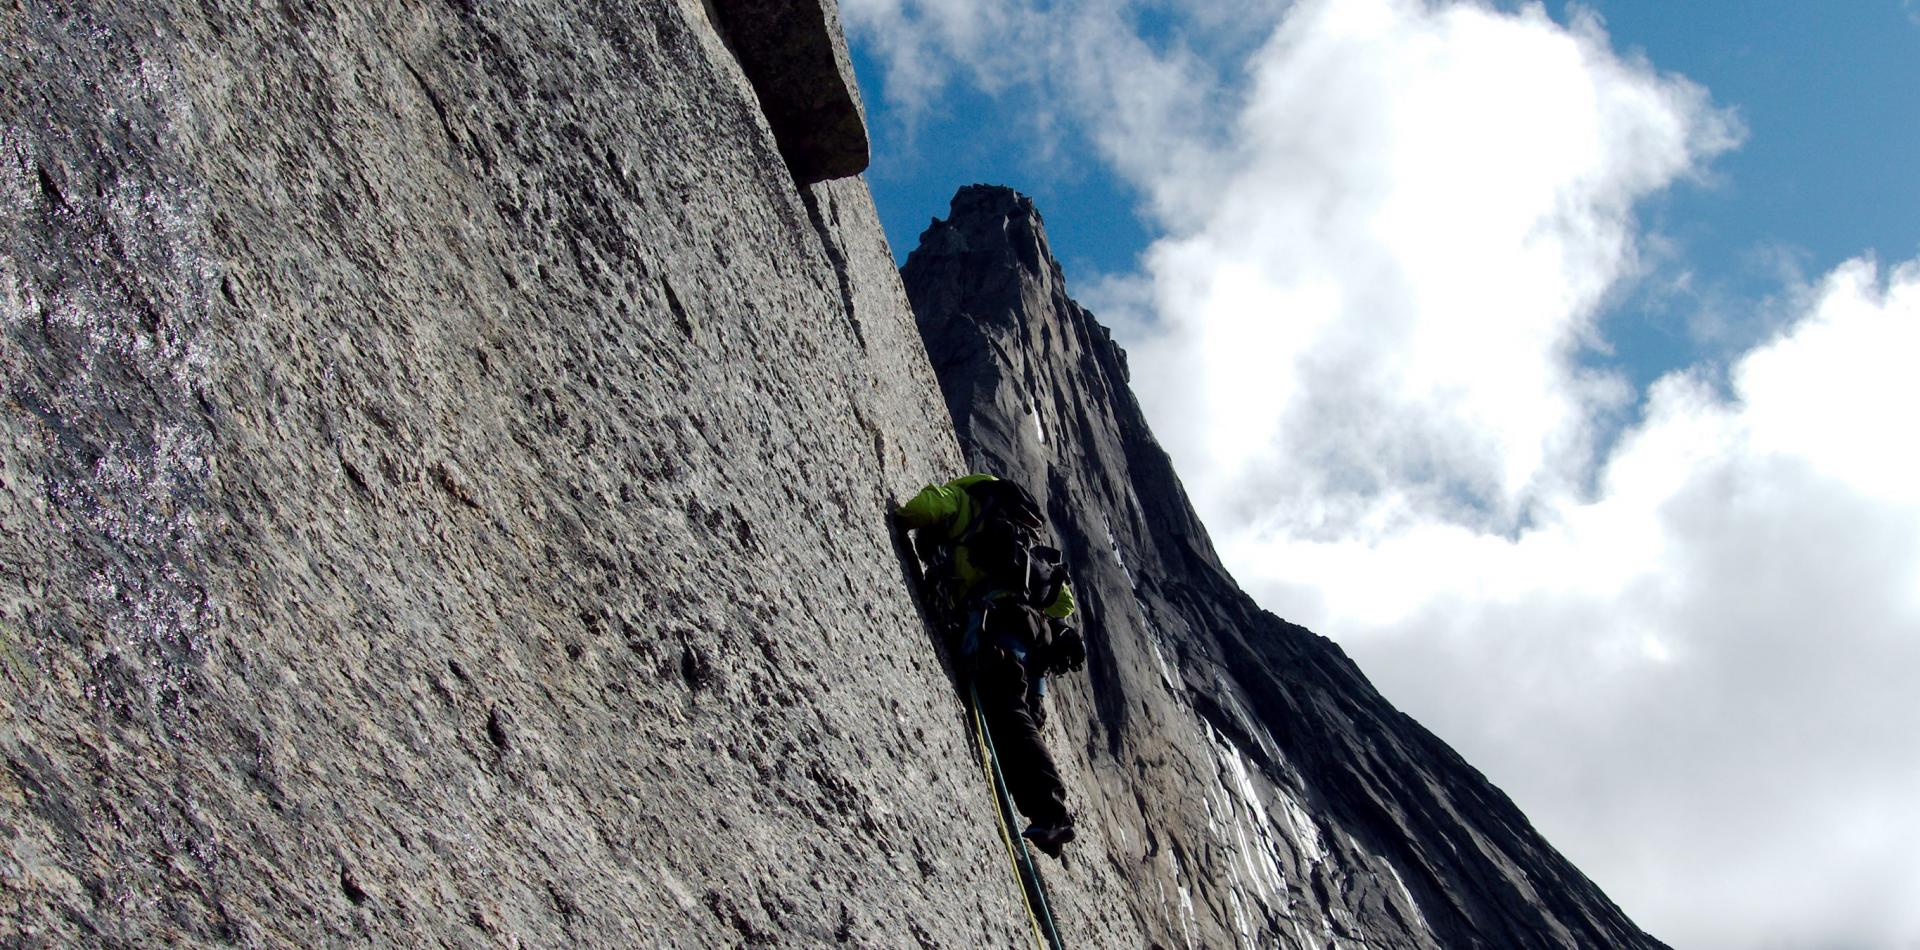 Climbing experiences close to Narvik